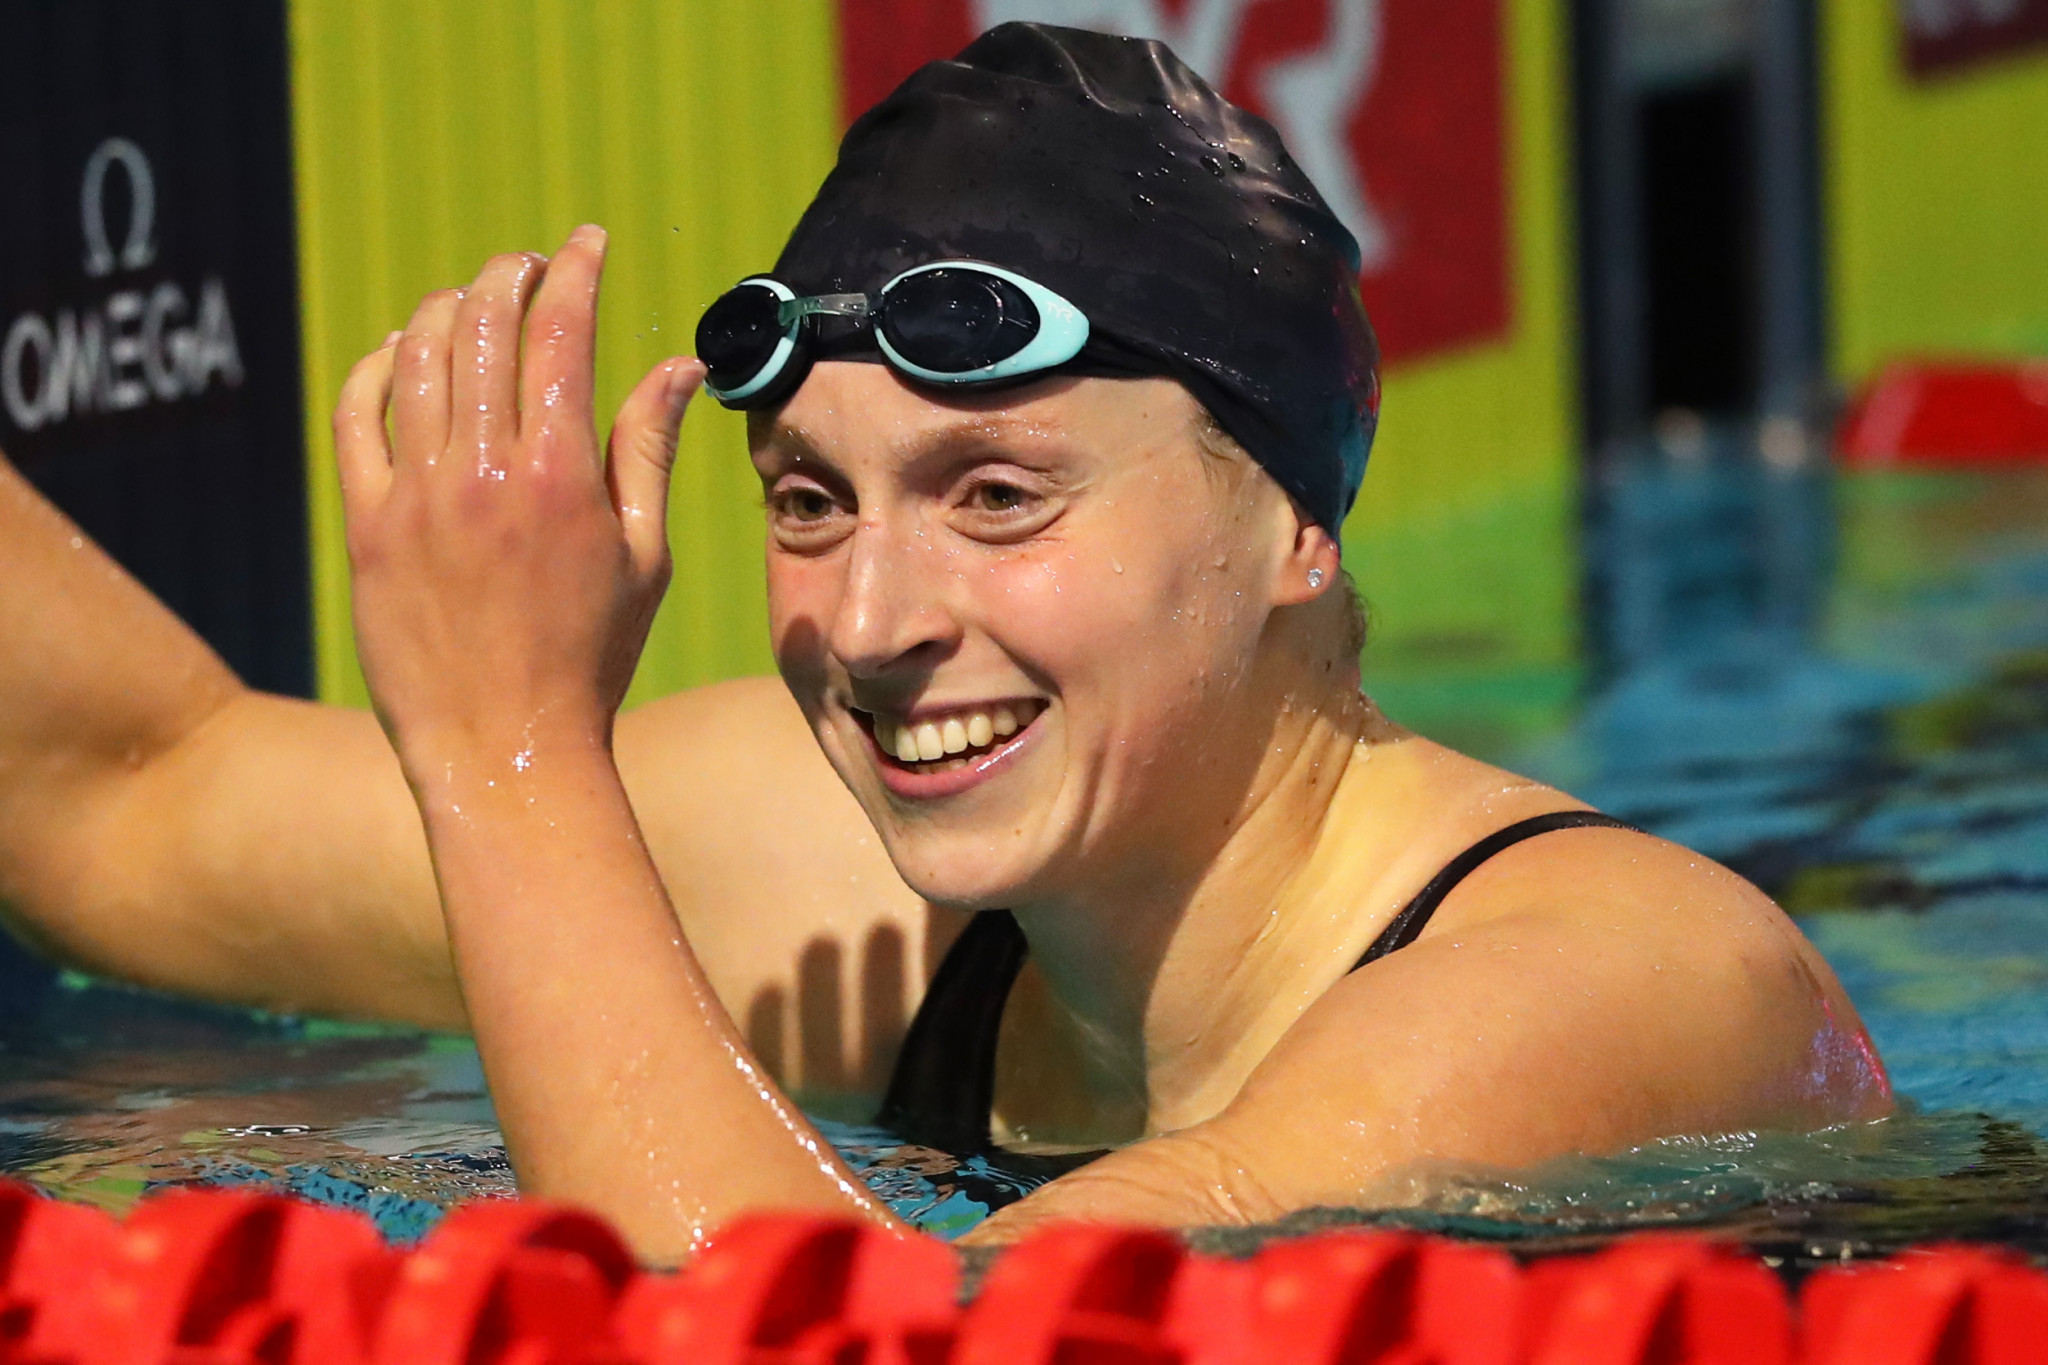 """Five-time Olympic swimming champion Katie Ledecky claimed athletes are """"ready to adjust"""" to a scaled-down Games in Tokyo next year ©Getty Images"""